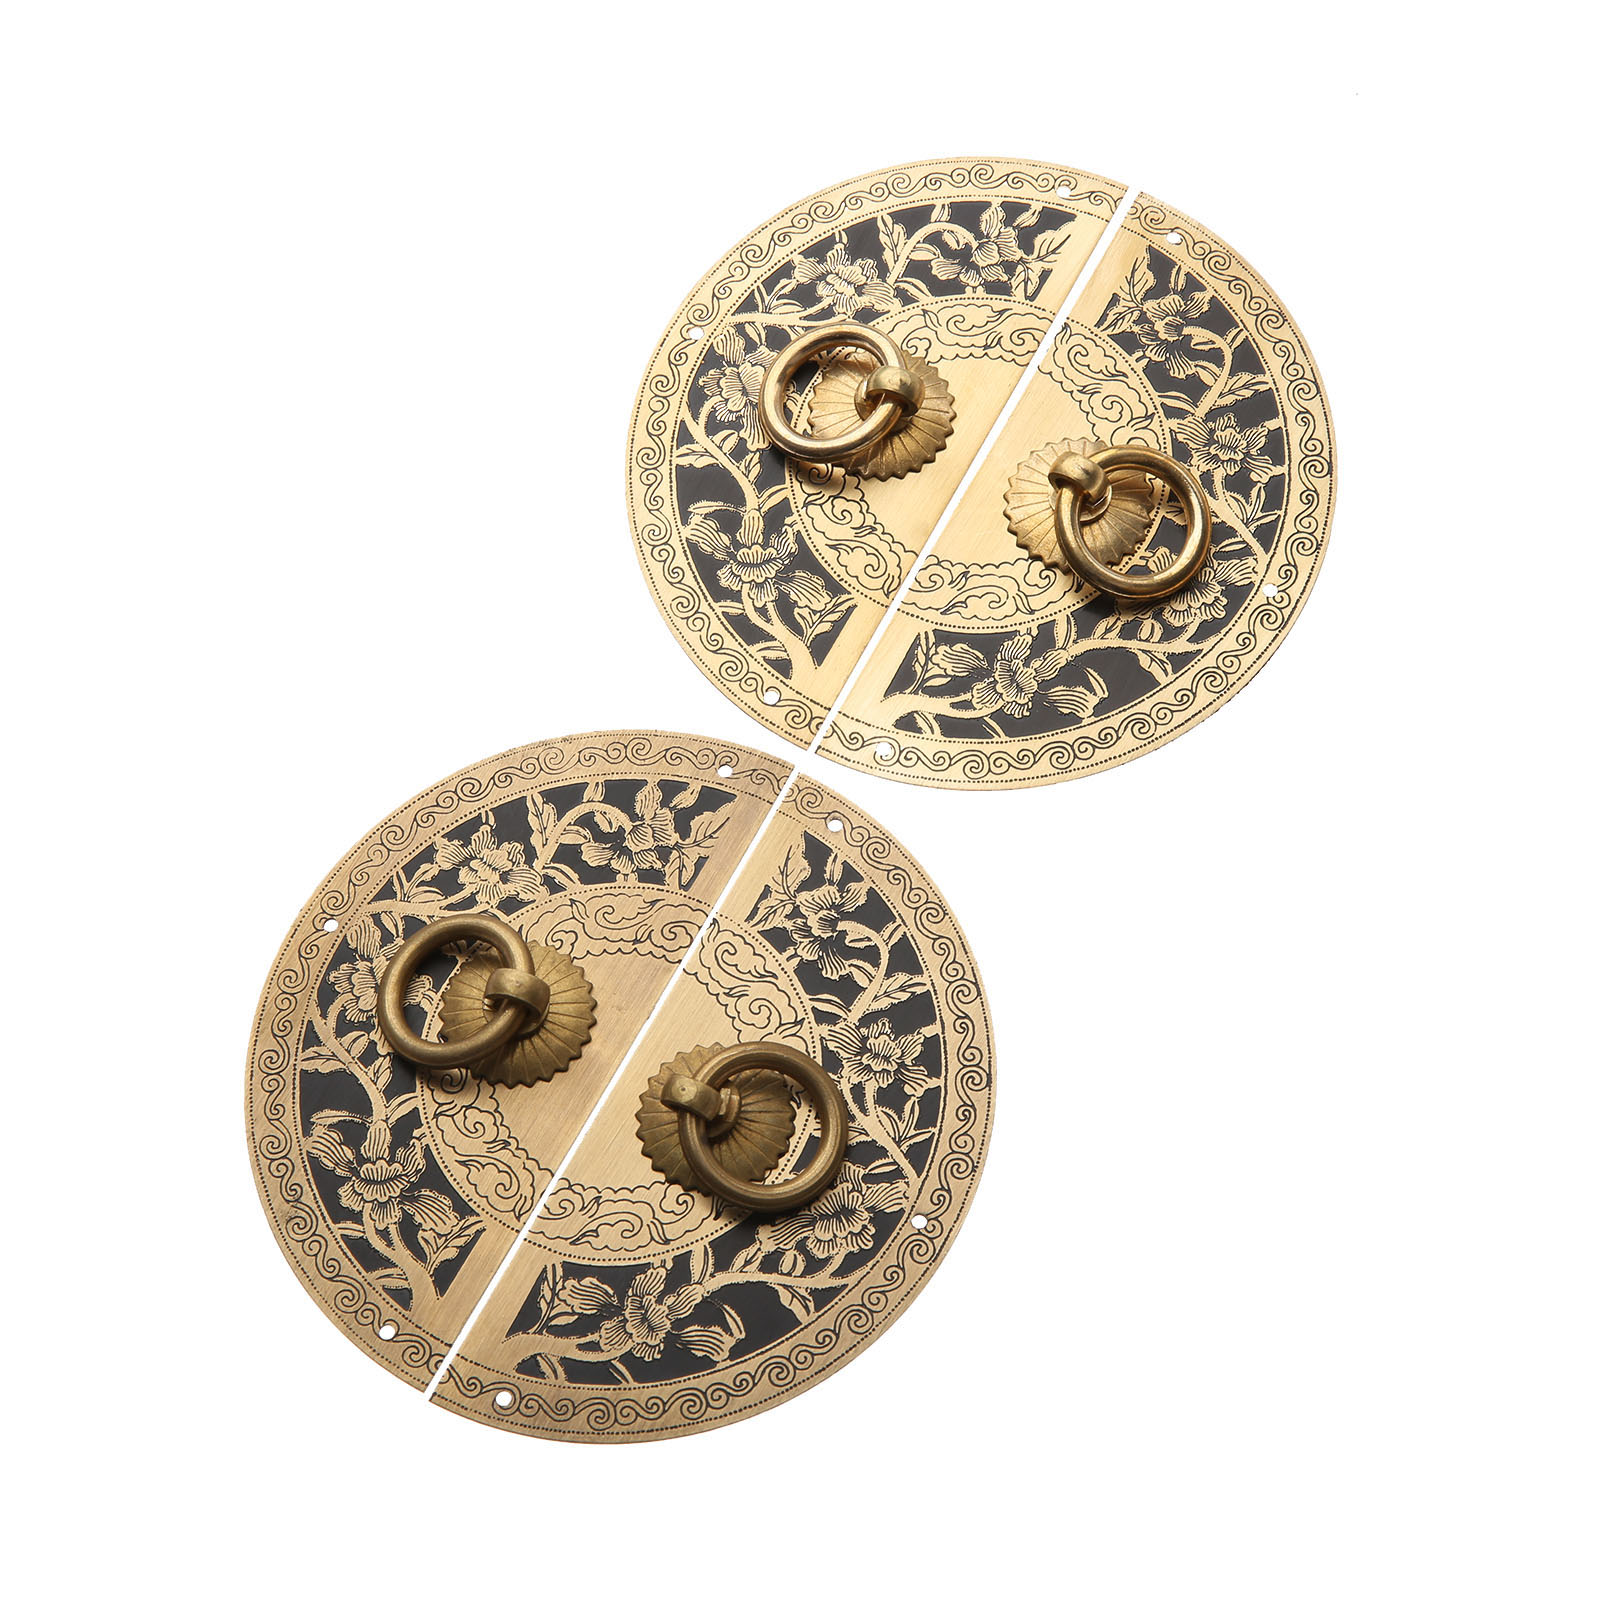 DRELD Chinese Antique Furniture Hardware Brass Round Vintage Pull Handle Knobs for Cabinet Cupboard Wooden Box Furniture HandleDRELD Chinese Antique Furniture Hardware Brass Round Vintage Pull Handle Knobs for Cabinet Cupboard Wooden Box Furniture Handle